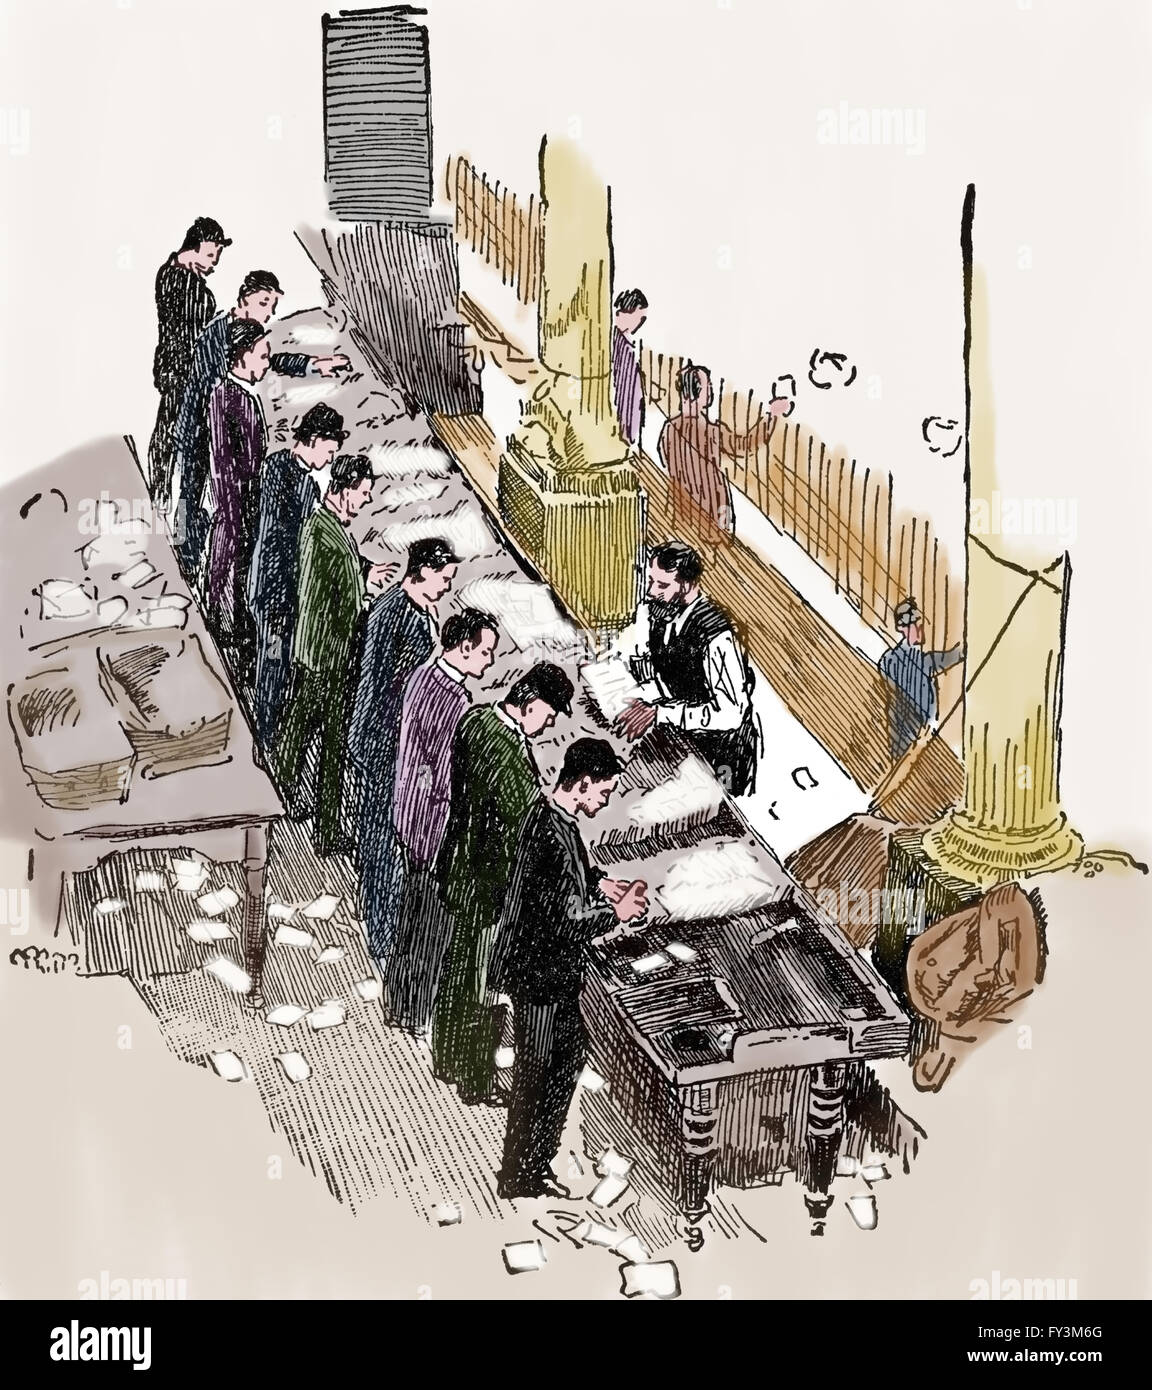 Stamping table in a Post Office. Engraving. Color. 19th century. - Stock Image